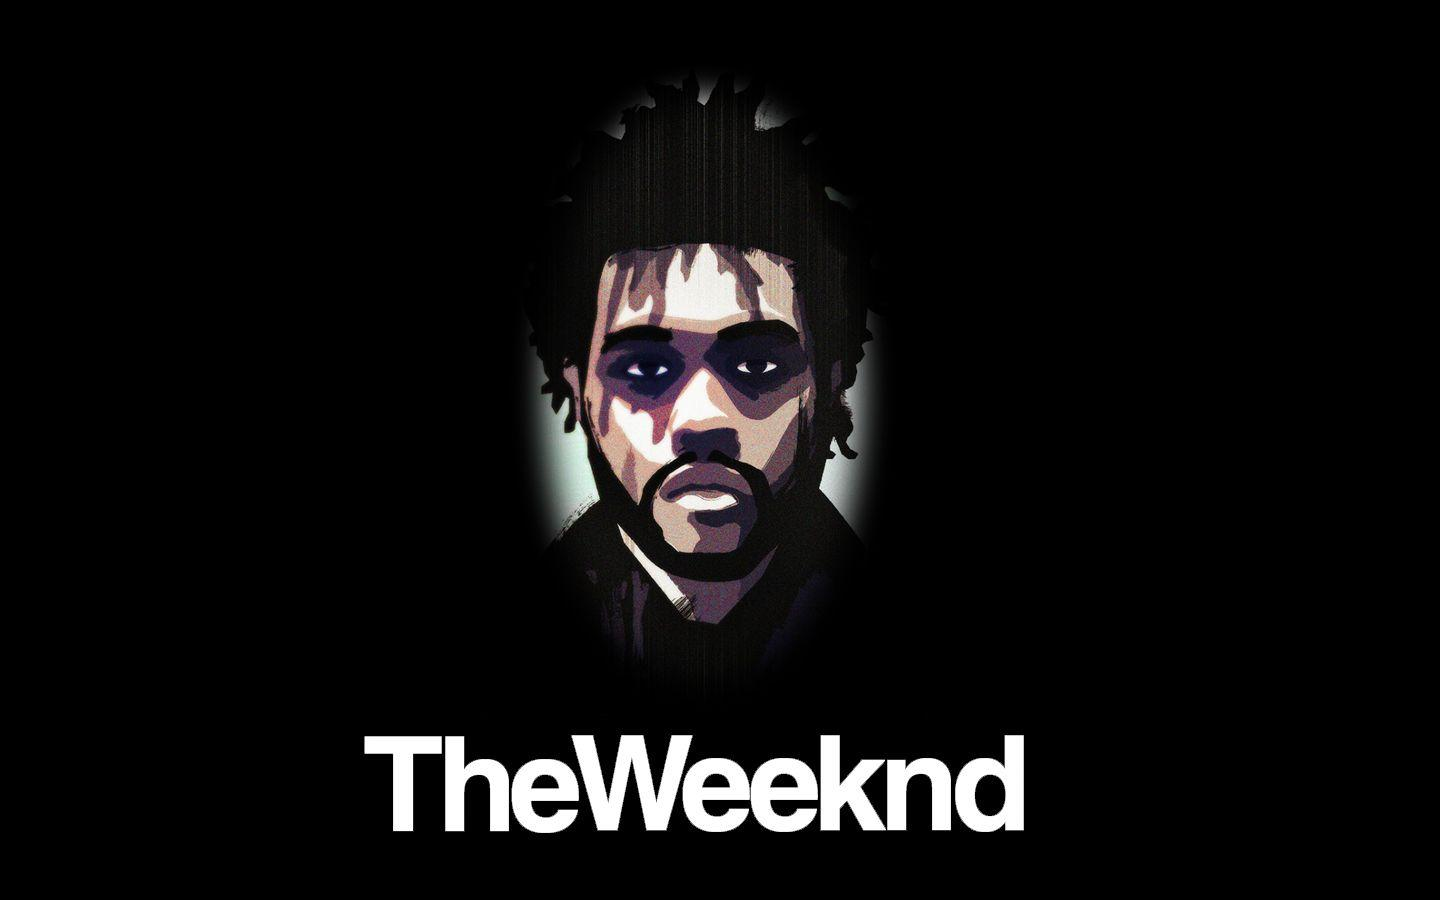 The Weeknd XO Wallpaper - WallpaperSafari